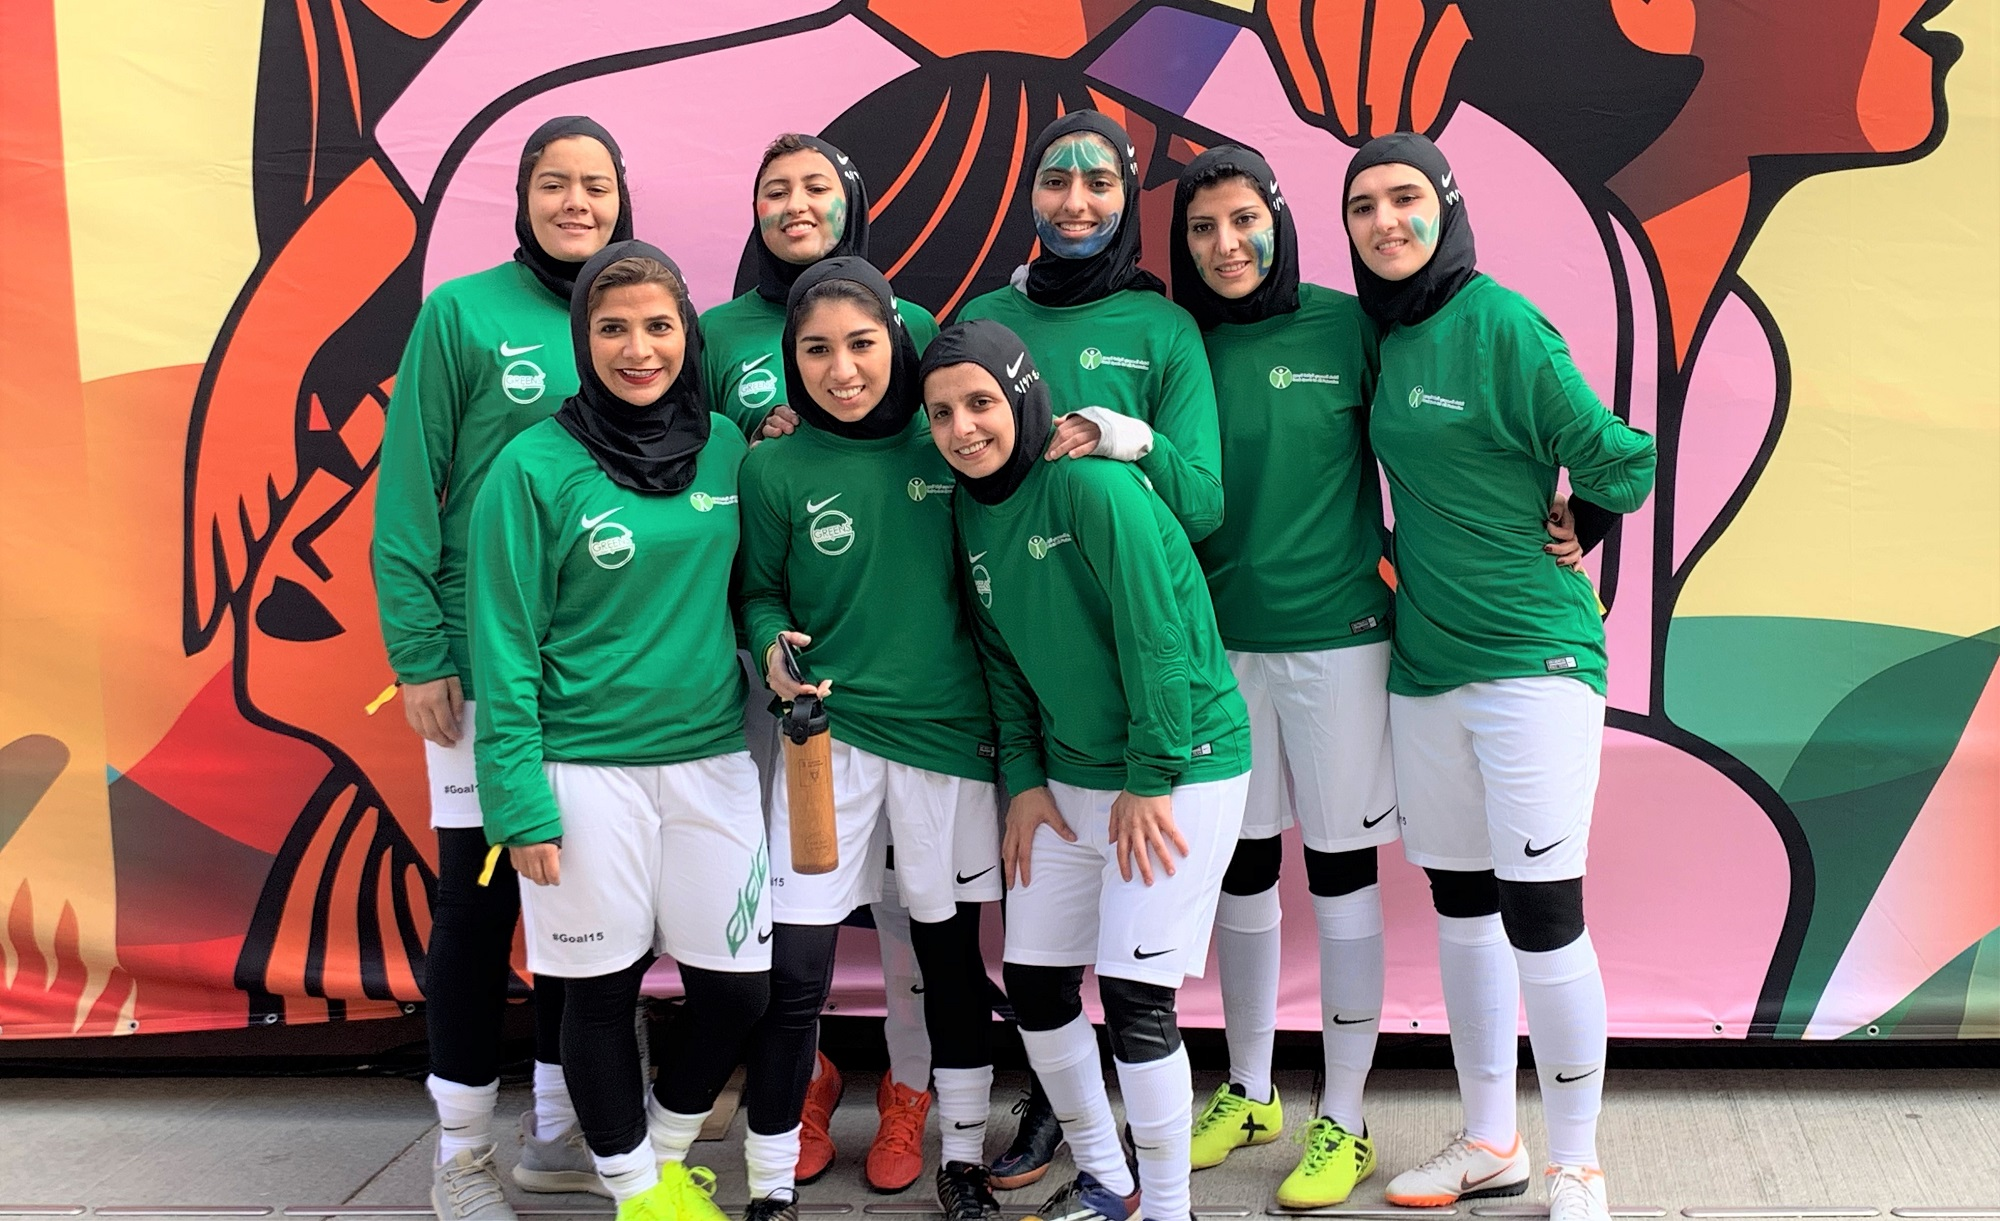 Saudi Greens team players to stage online workouts as part of GGWCup Club  House virtual fitness program - Sports For All